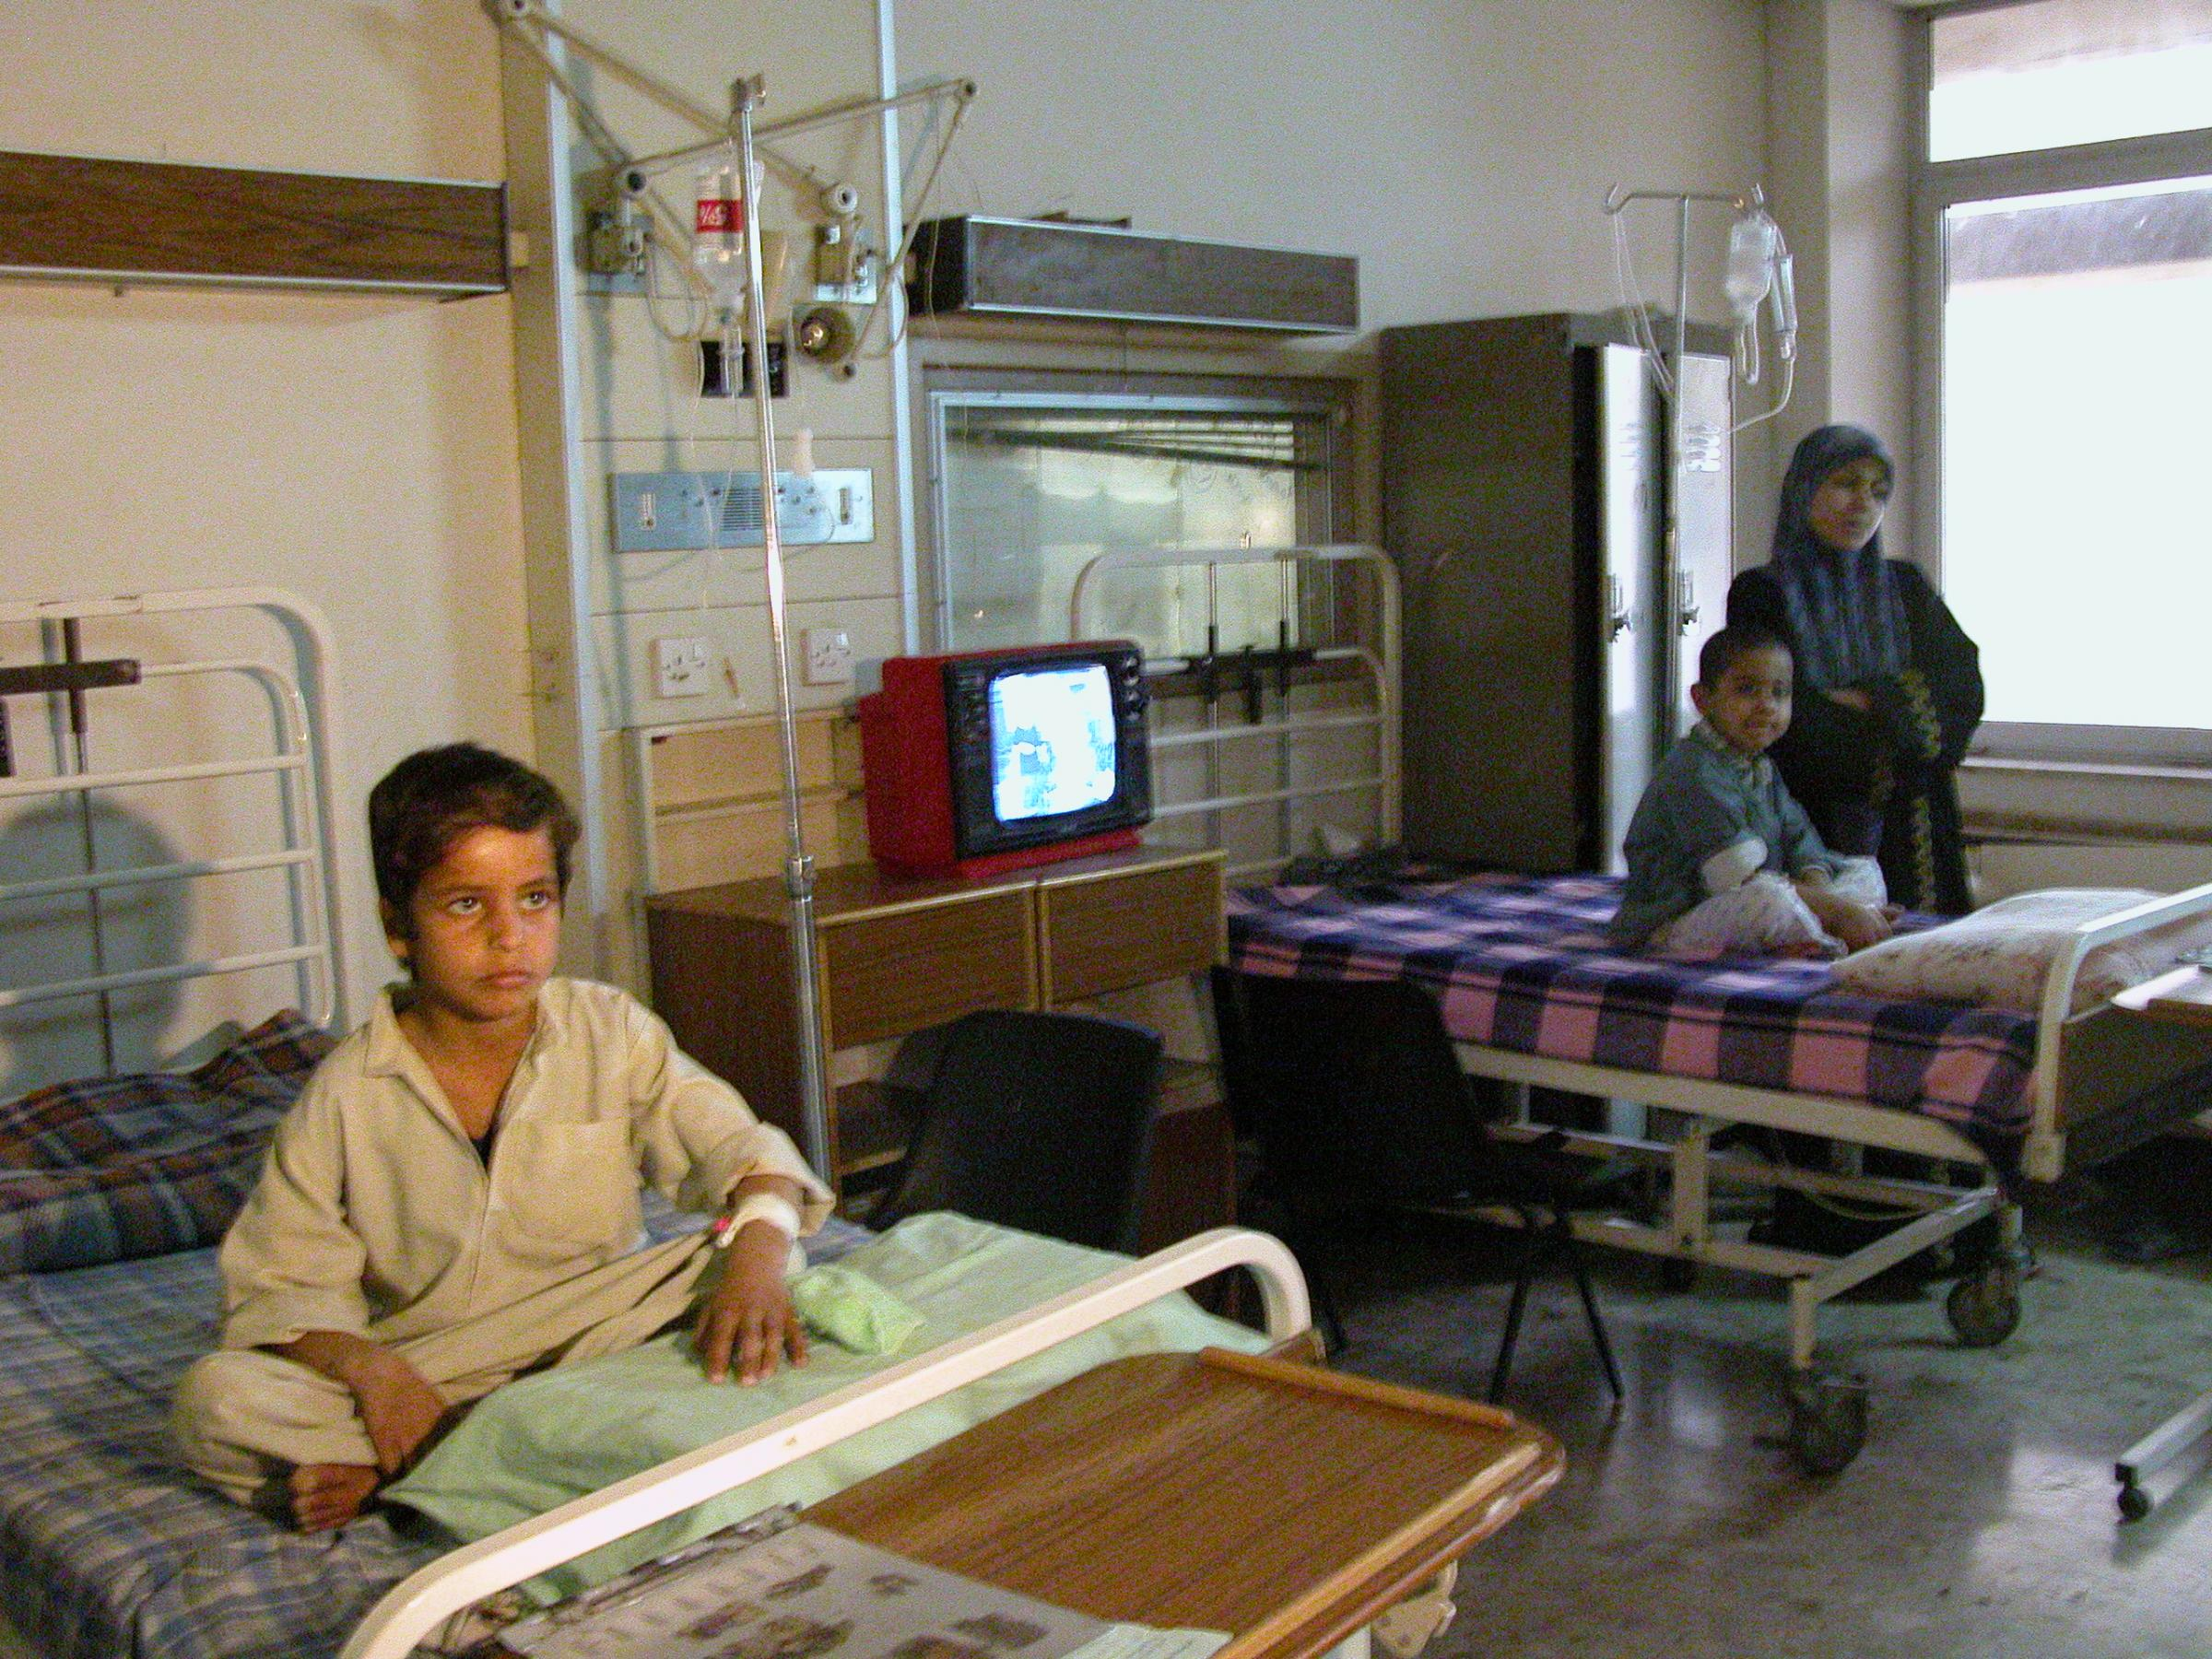 Iraqi children sitting on beds in a hospital, a mother stands with them.